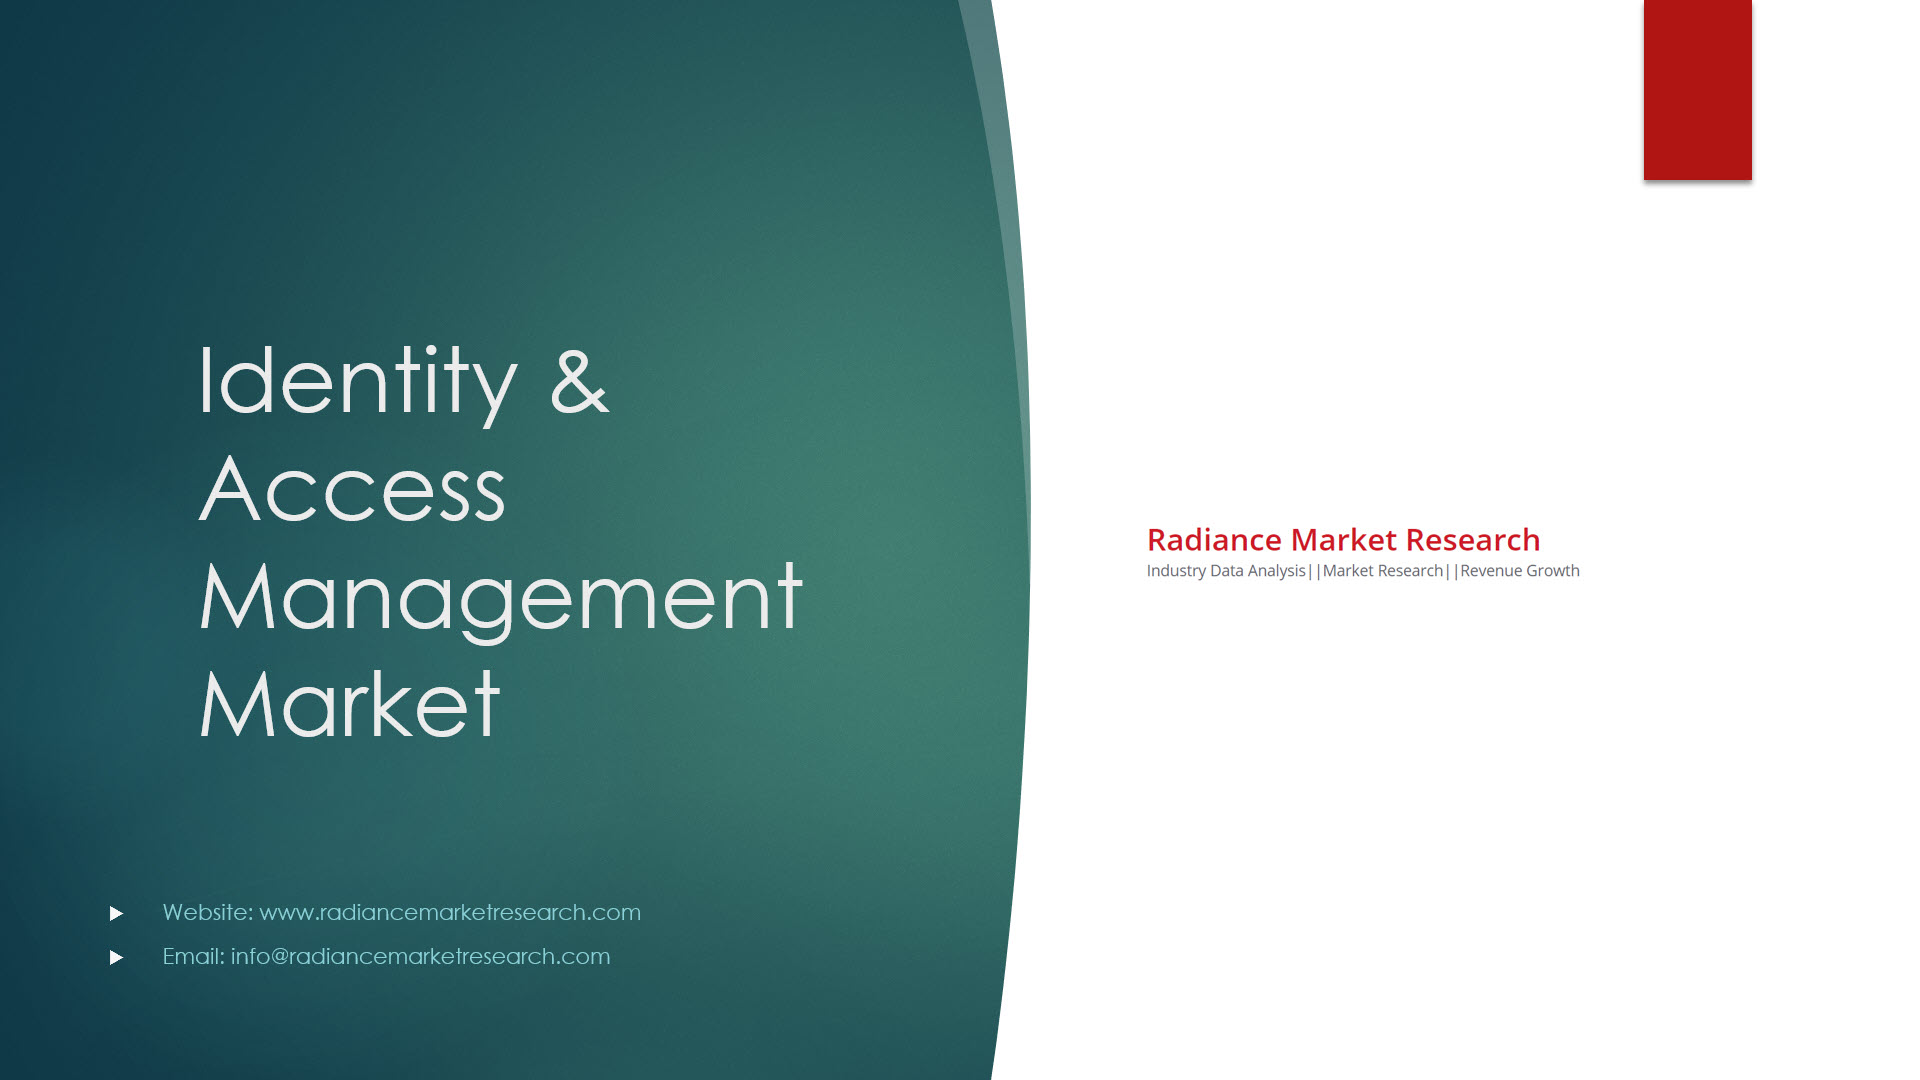 Identity & Access Management Market